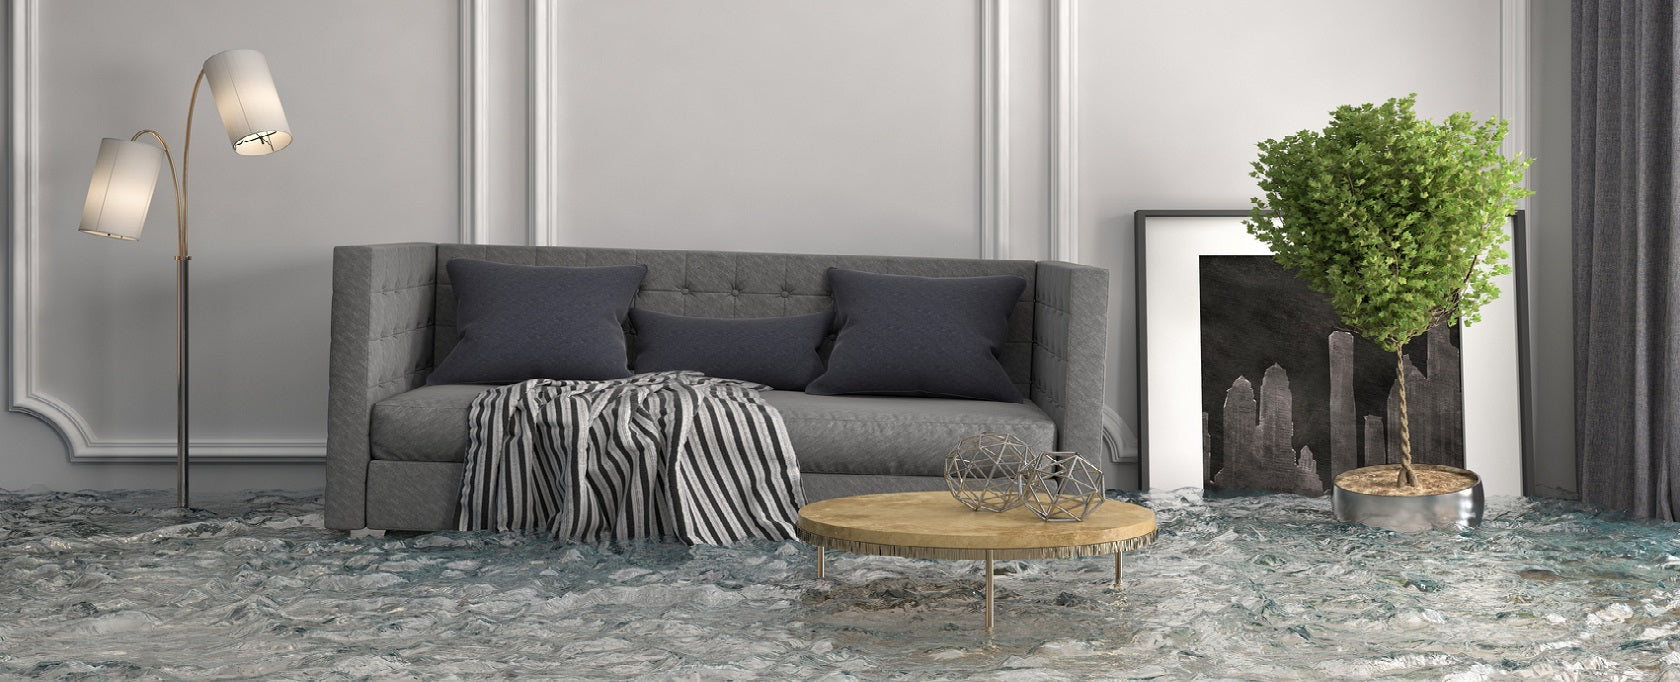 Rain, Rain, Go Away: Salvage Your Furnishings After a Flood